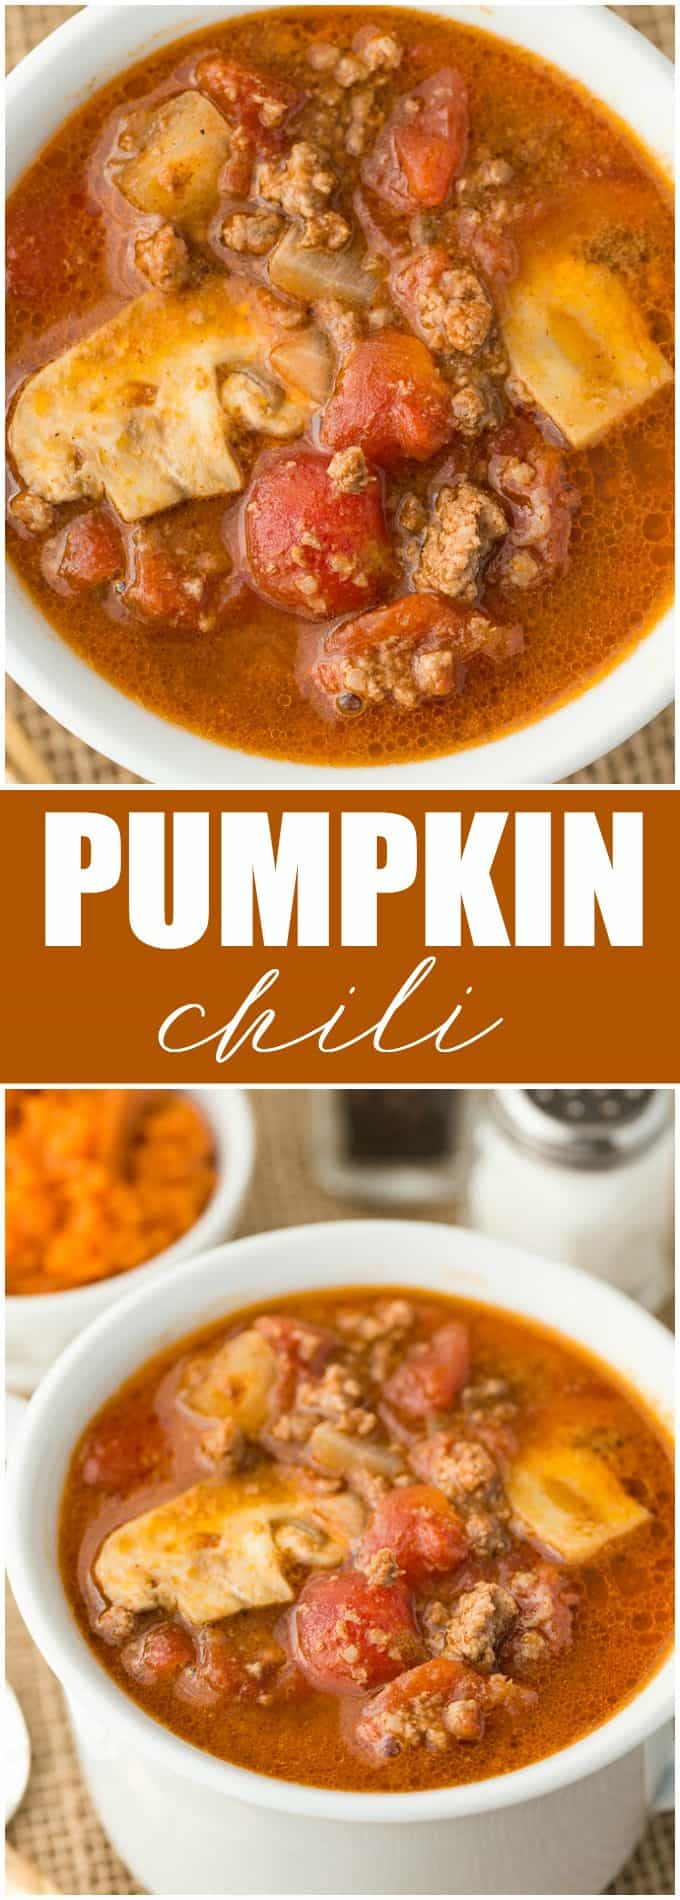 Pumpkin Chili - A unique, flavorful twist on chili for fall!